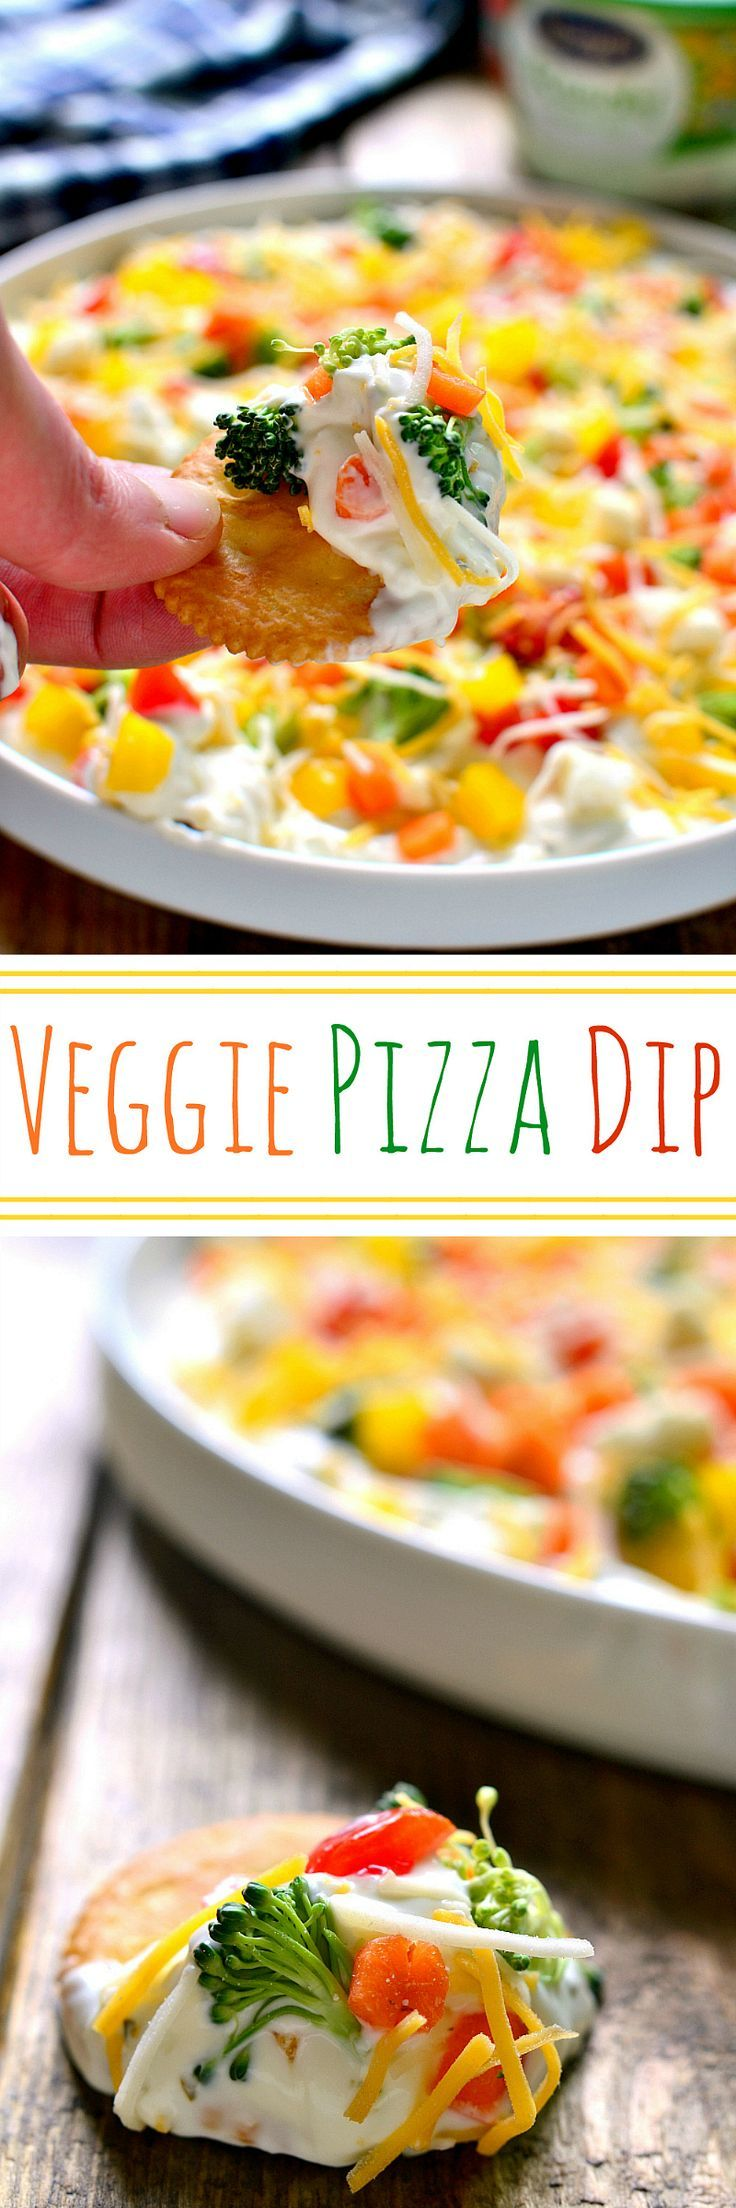 Veggie Pizza Dip has all the flavors of the veggie pizza you love....without the crust! Perfect for dipping vegetables, crackers, pretzels, or bread, this dip is quick, easy, and delicious!: